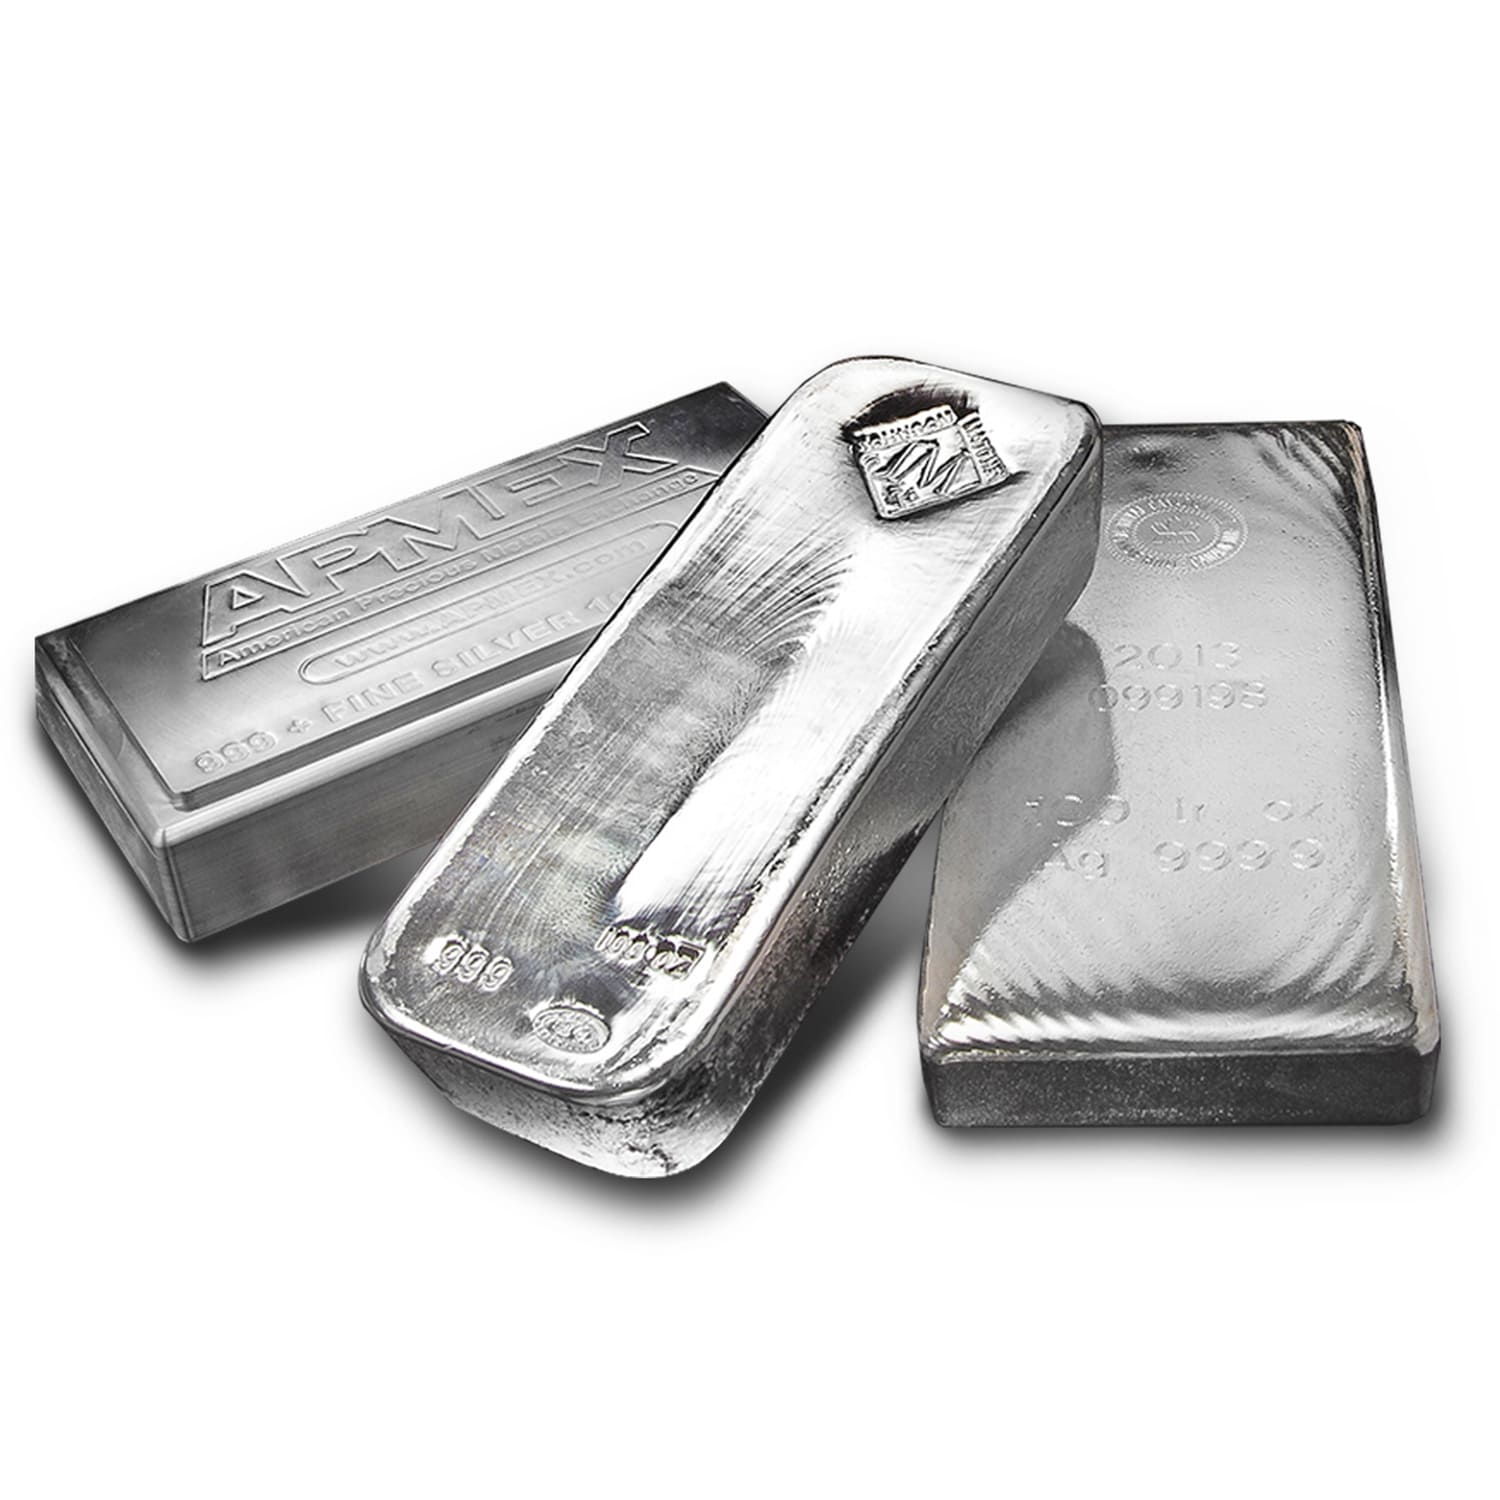 101.75 oz Silver Bars - Secondary Market